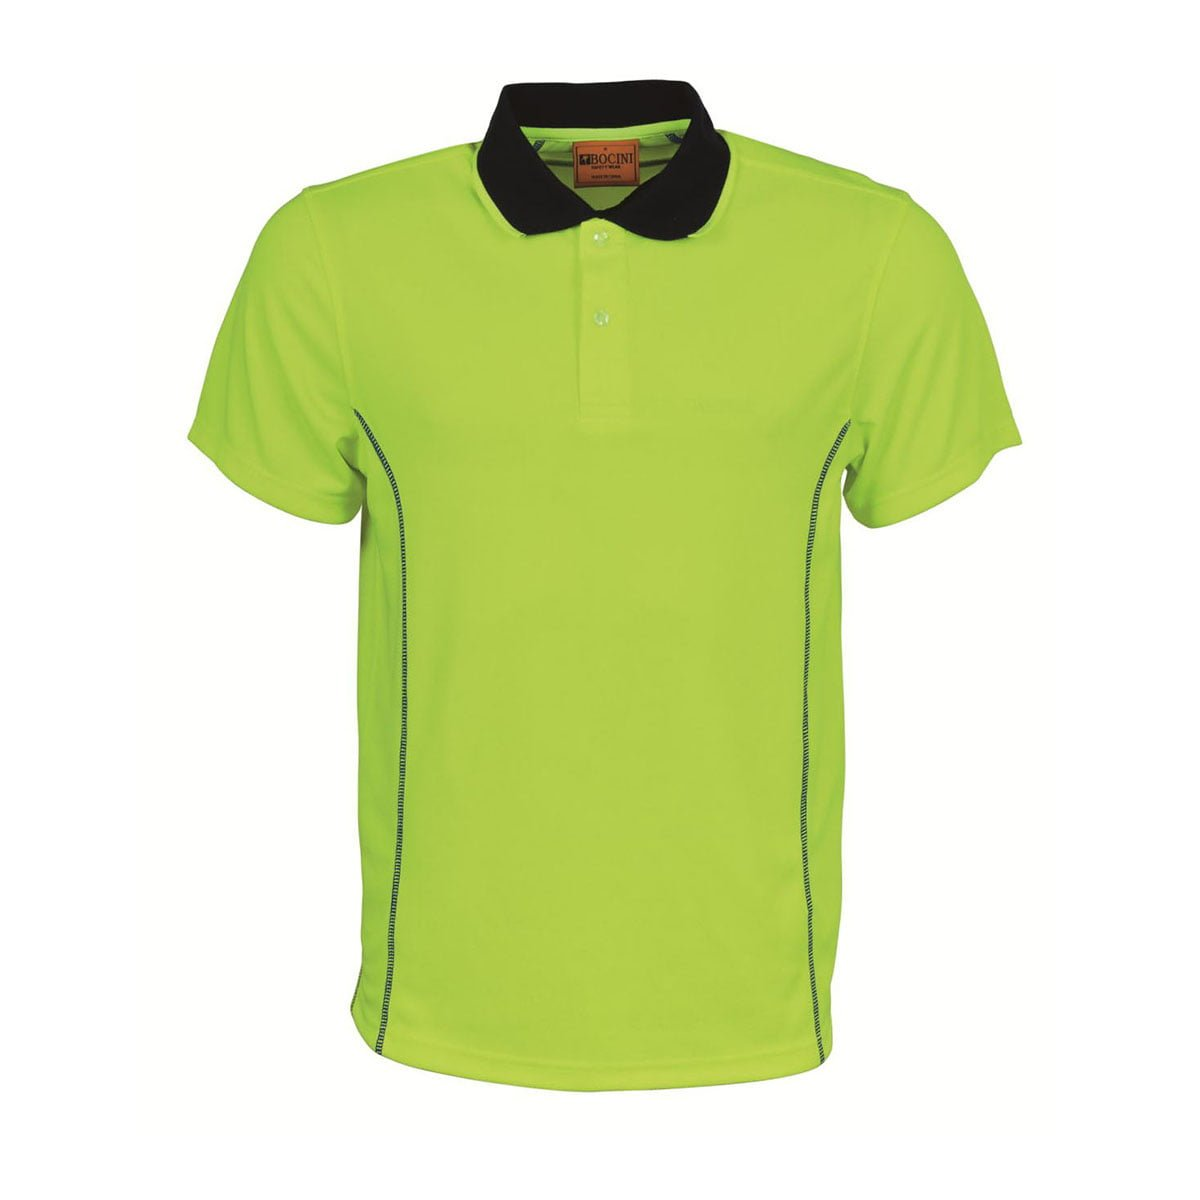 STITCH ESSENTIALS-MENS HI VIS POLO-Lime / Navy